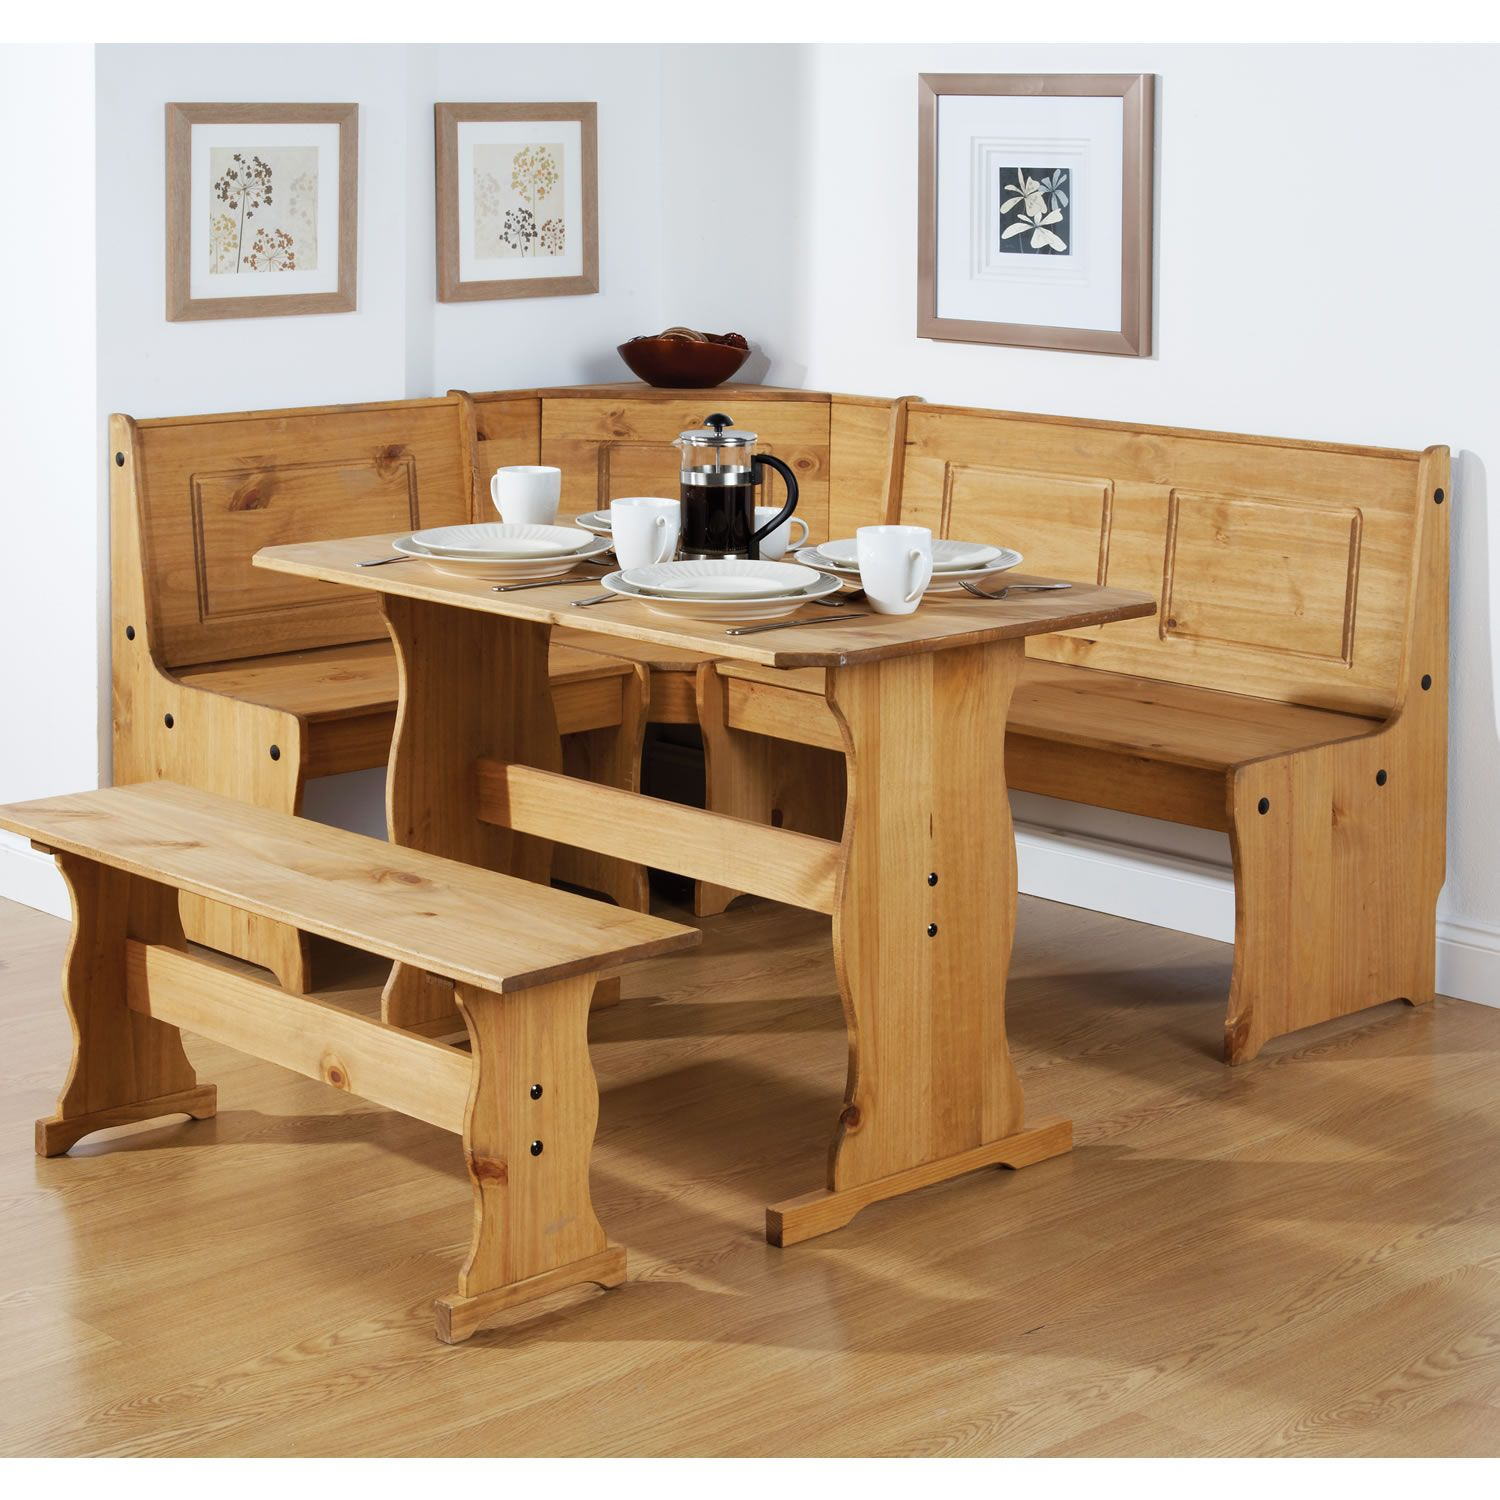 Well Made Corner Bench Seat Dining Table With Natural Wooden Materials Design